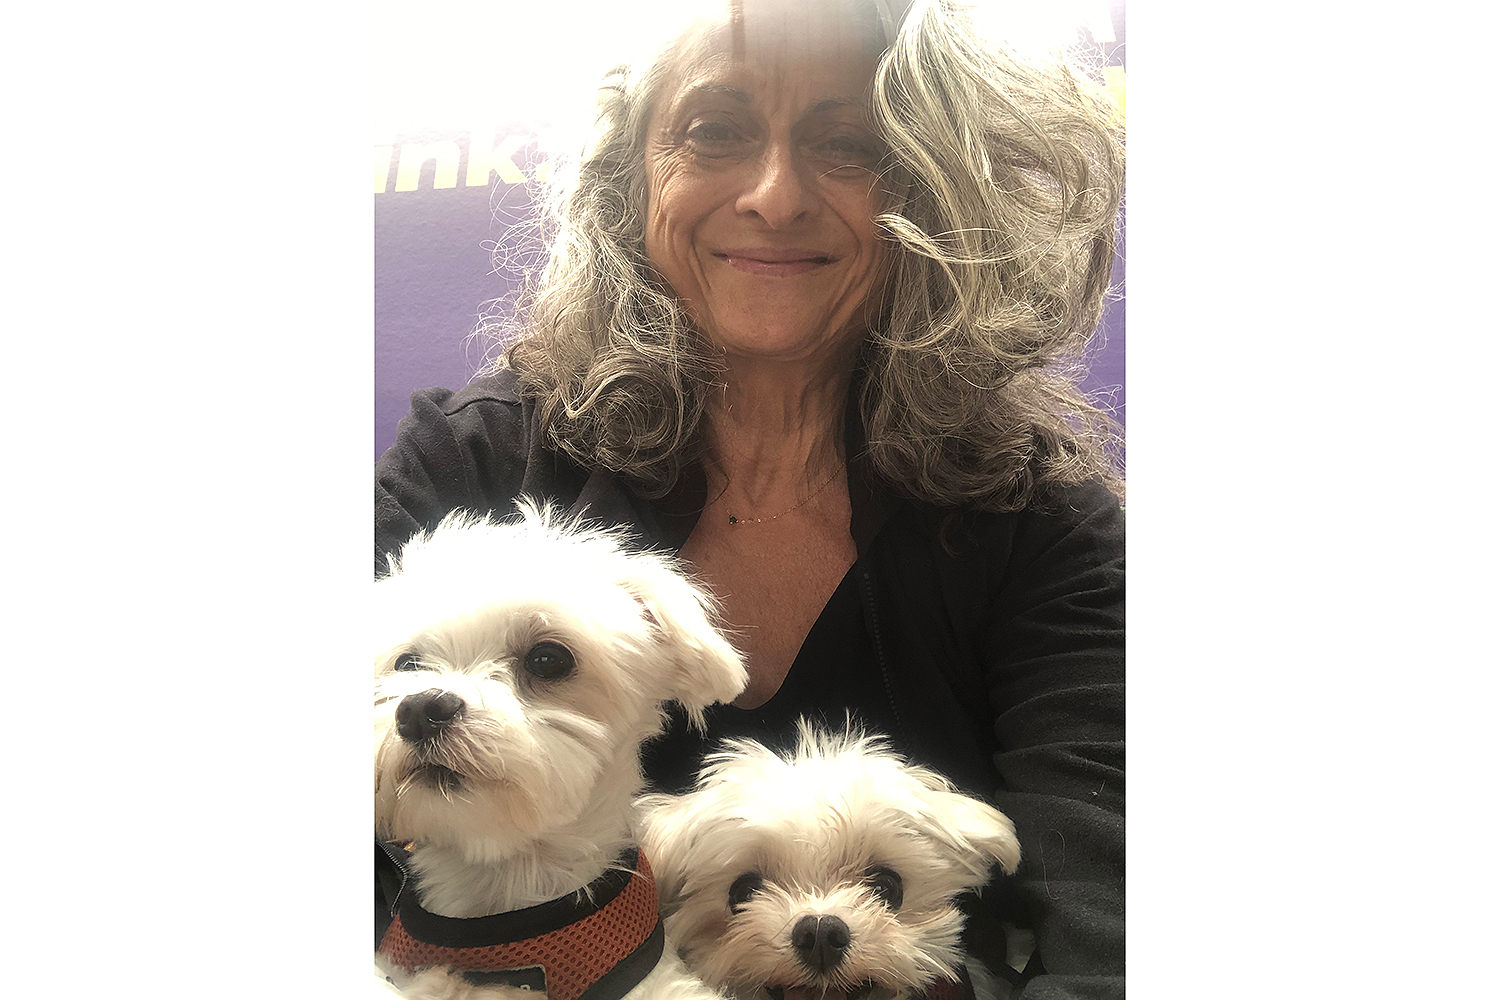 Janis Dardaris and her two dogs